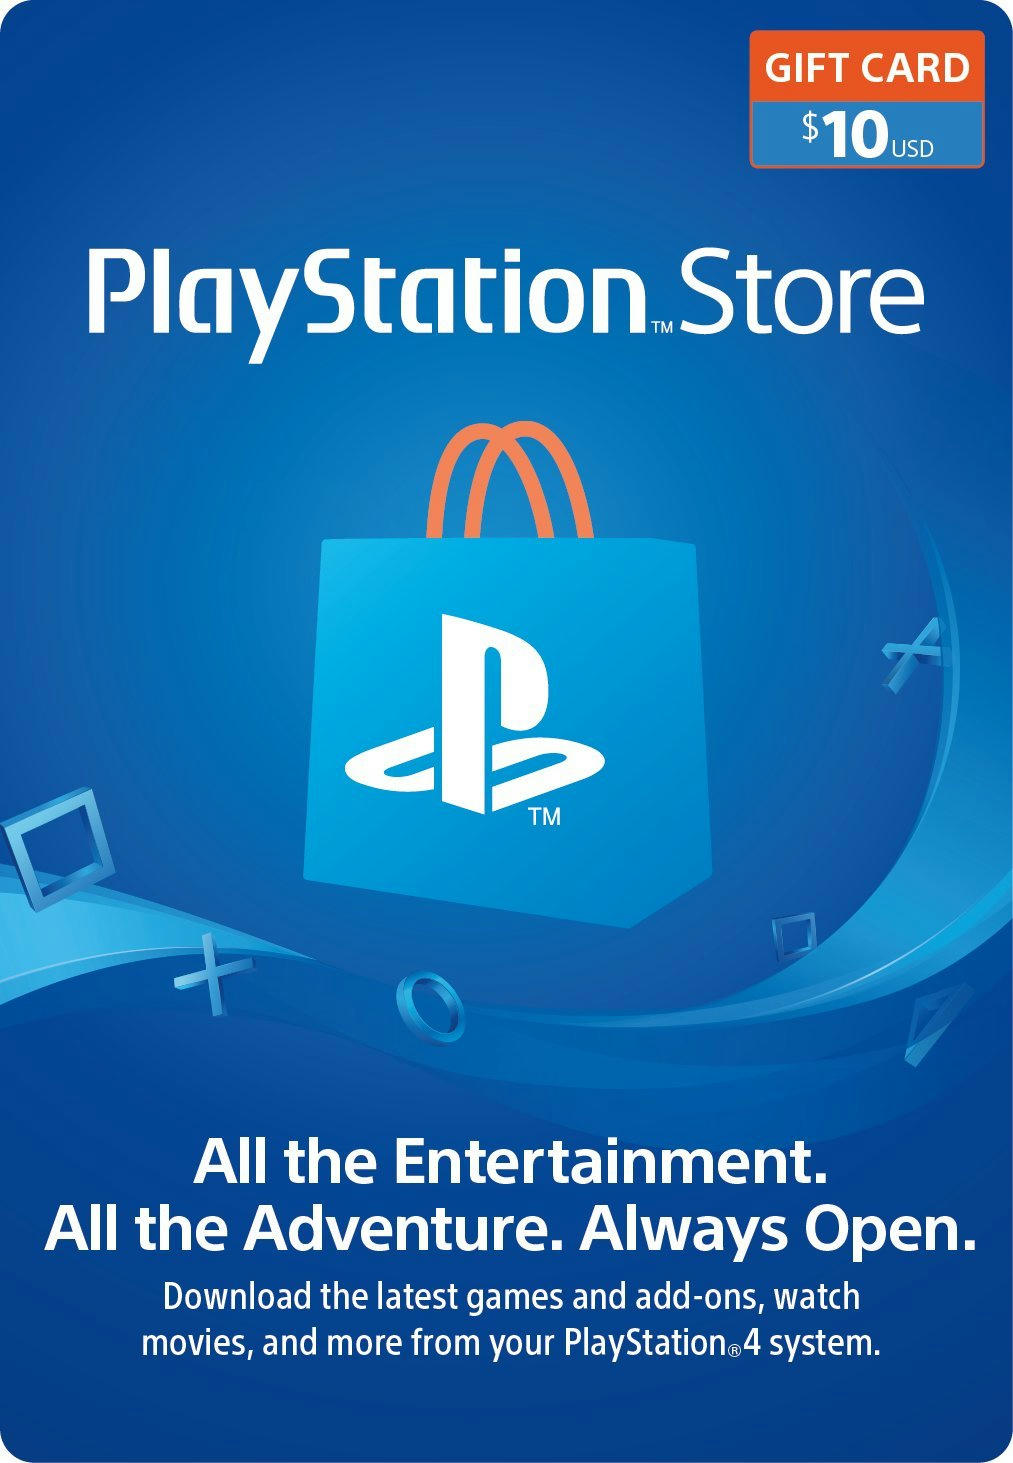 $10 PlayStation Store Gift Card Digital Code-online shopping store